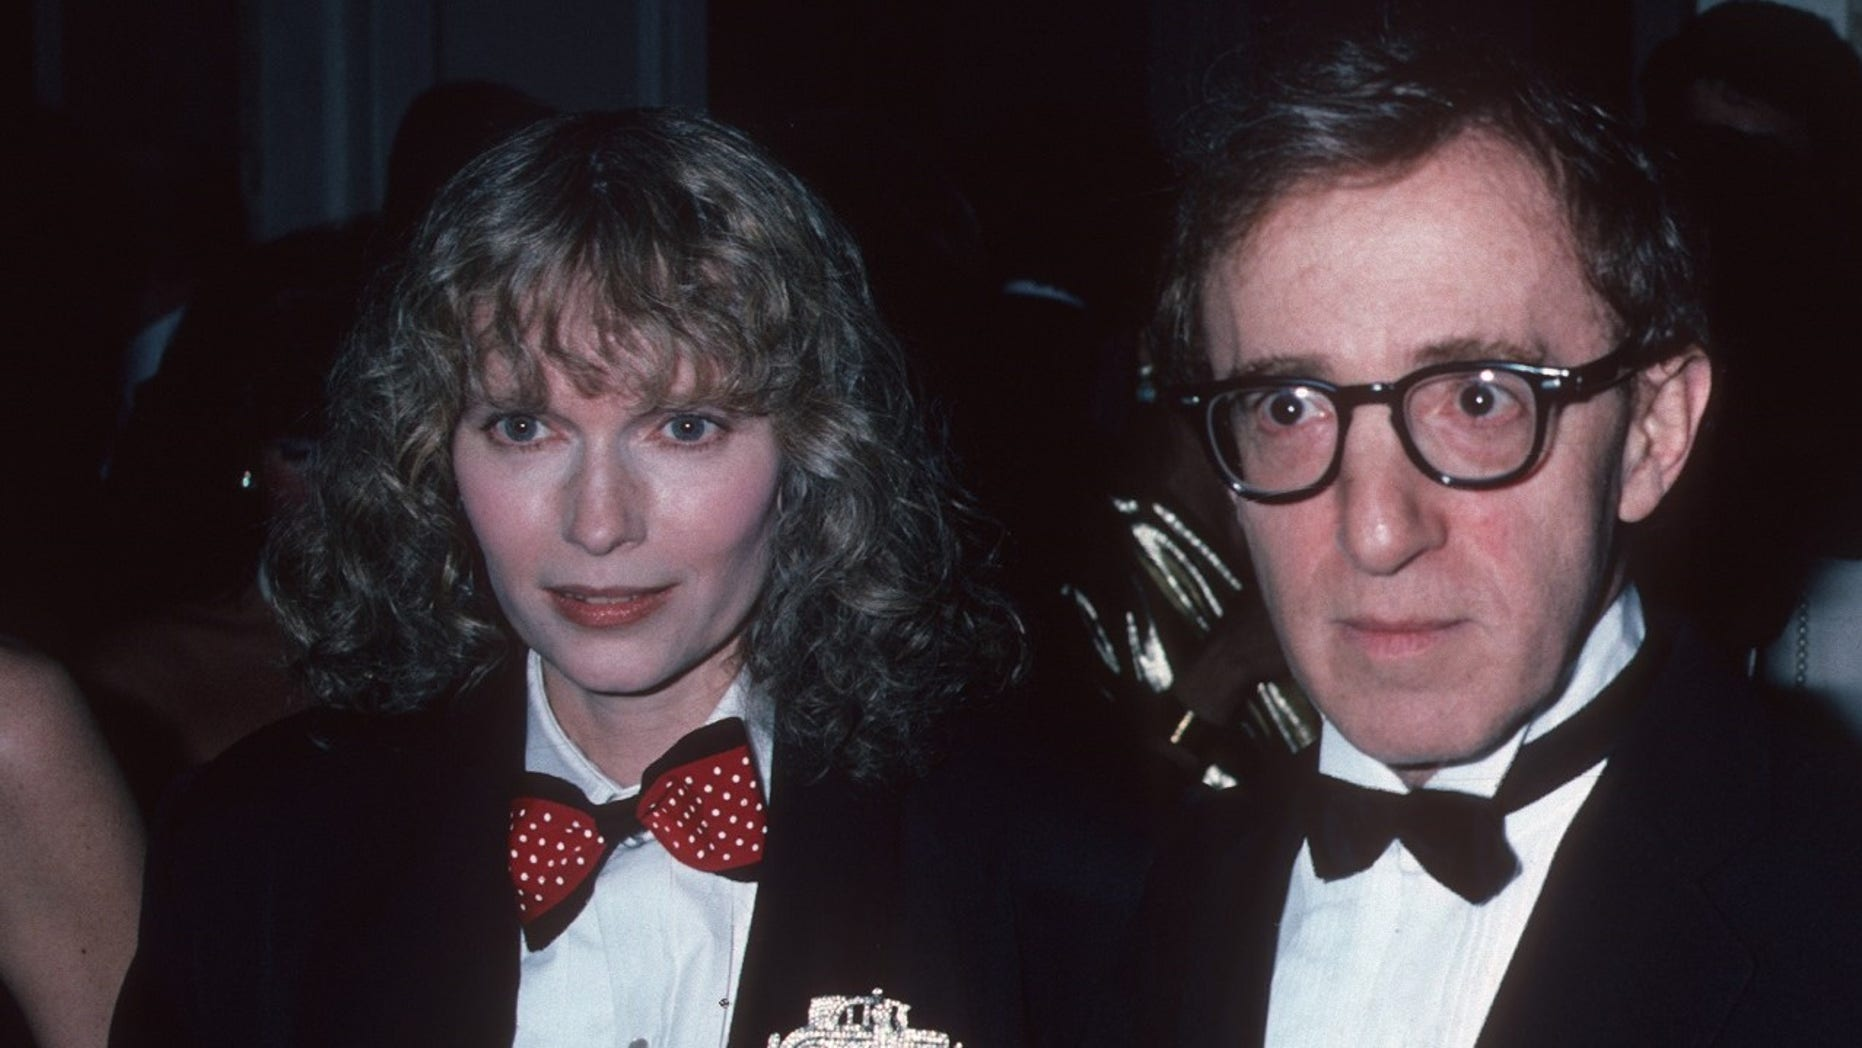 Mia Farrow said she doesn't care about Woody Allen.